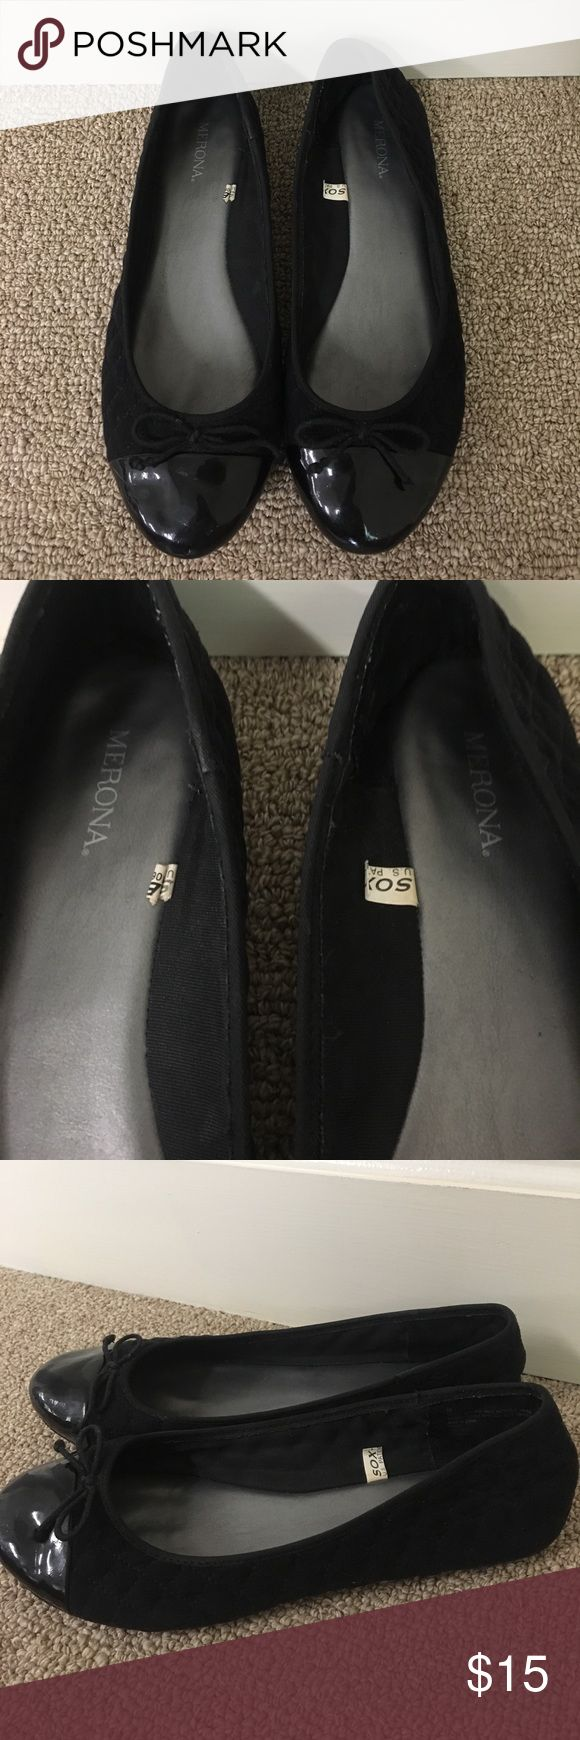 MERONA black flats- quilted w/ bows at top target brand- merona. gently used. very comfy & flexible shoe. great condition. no rips/stains. smoker-free home. willing to negotiate price Merona Shoes Flats & Loafers